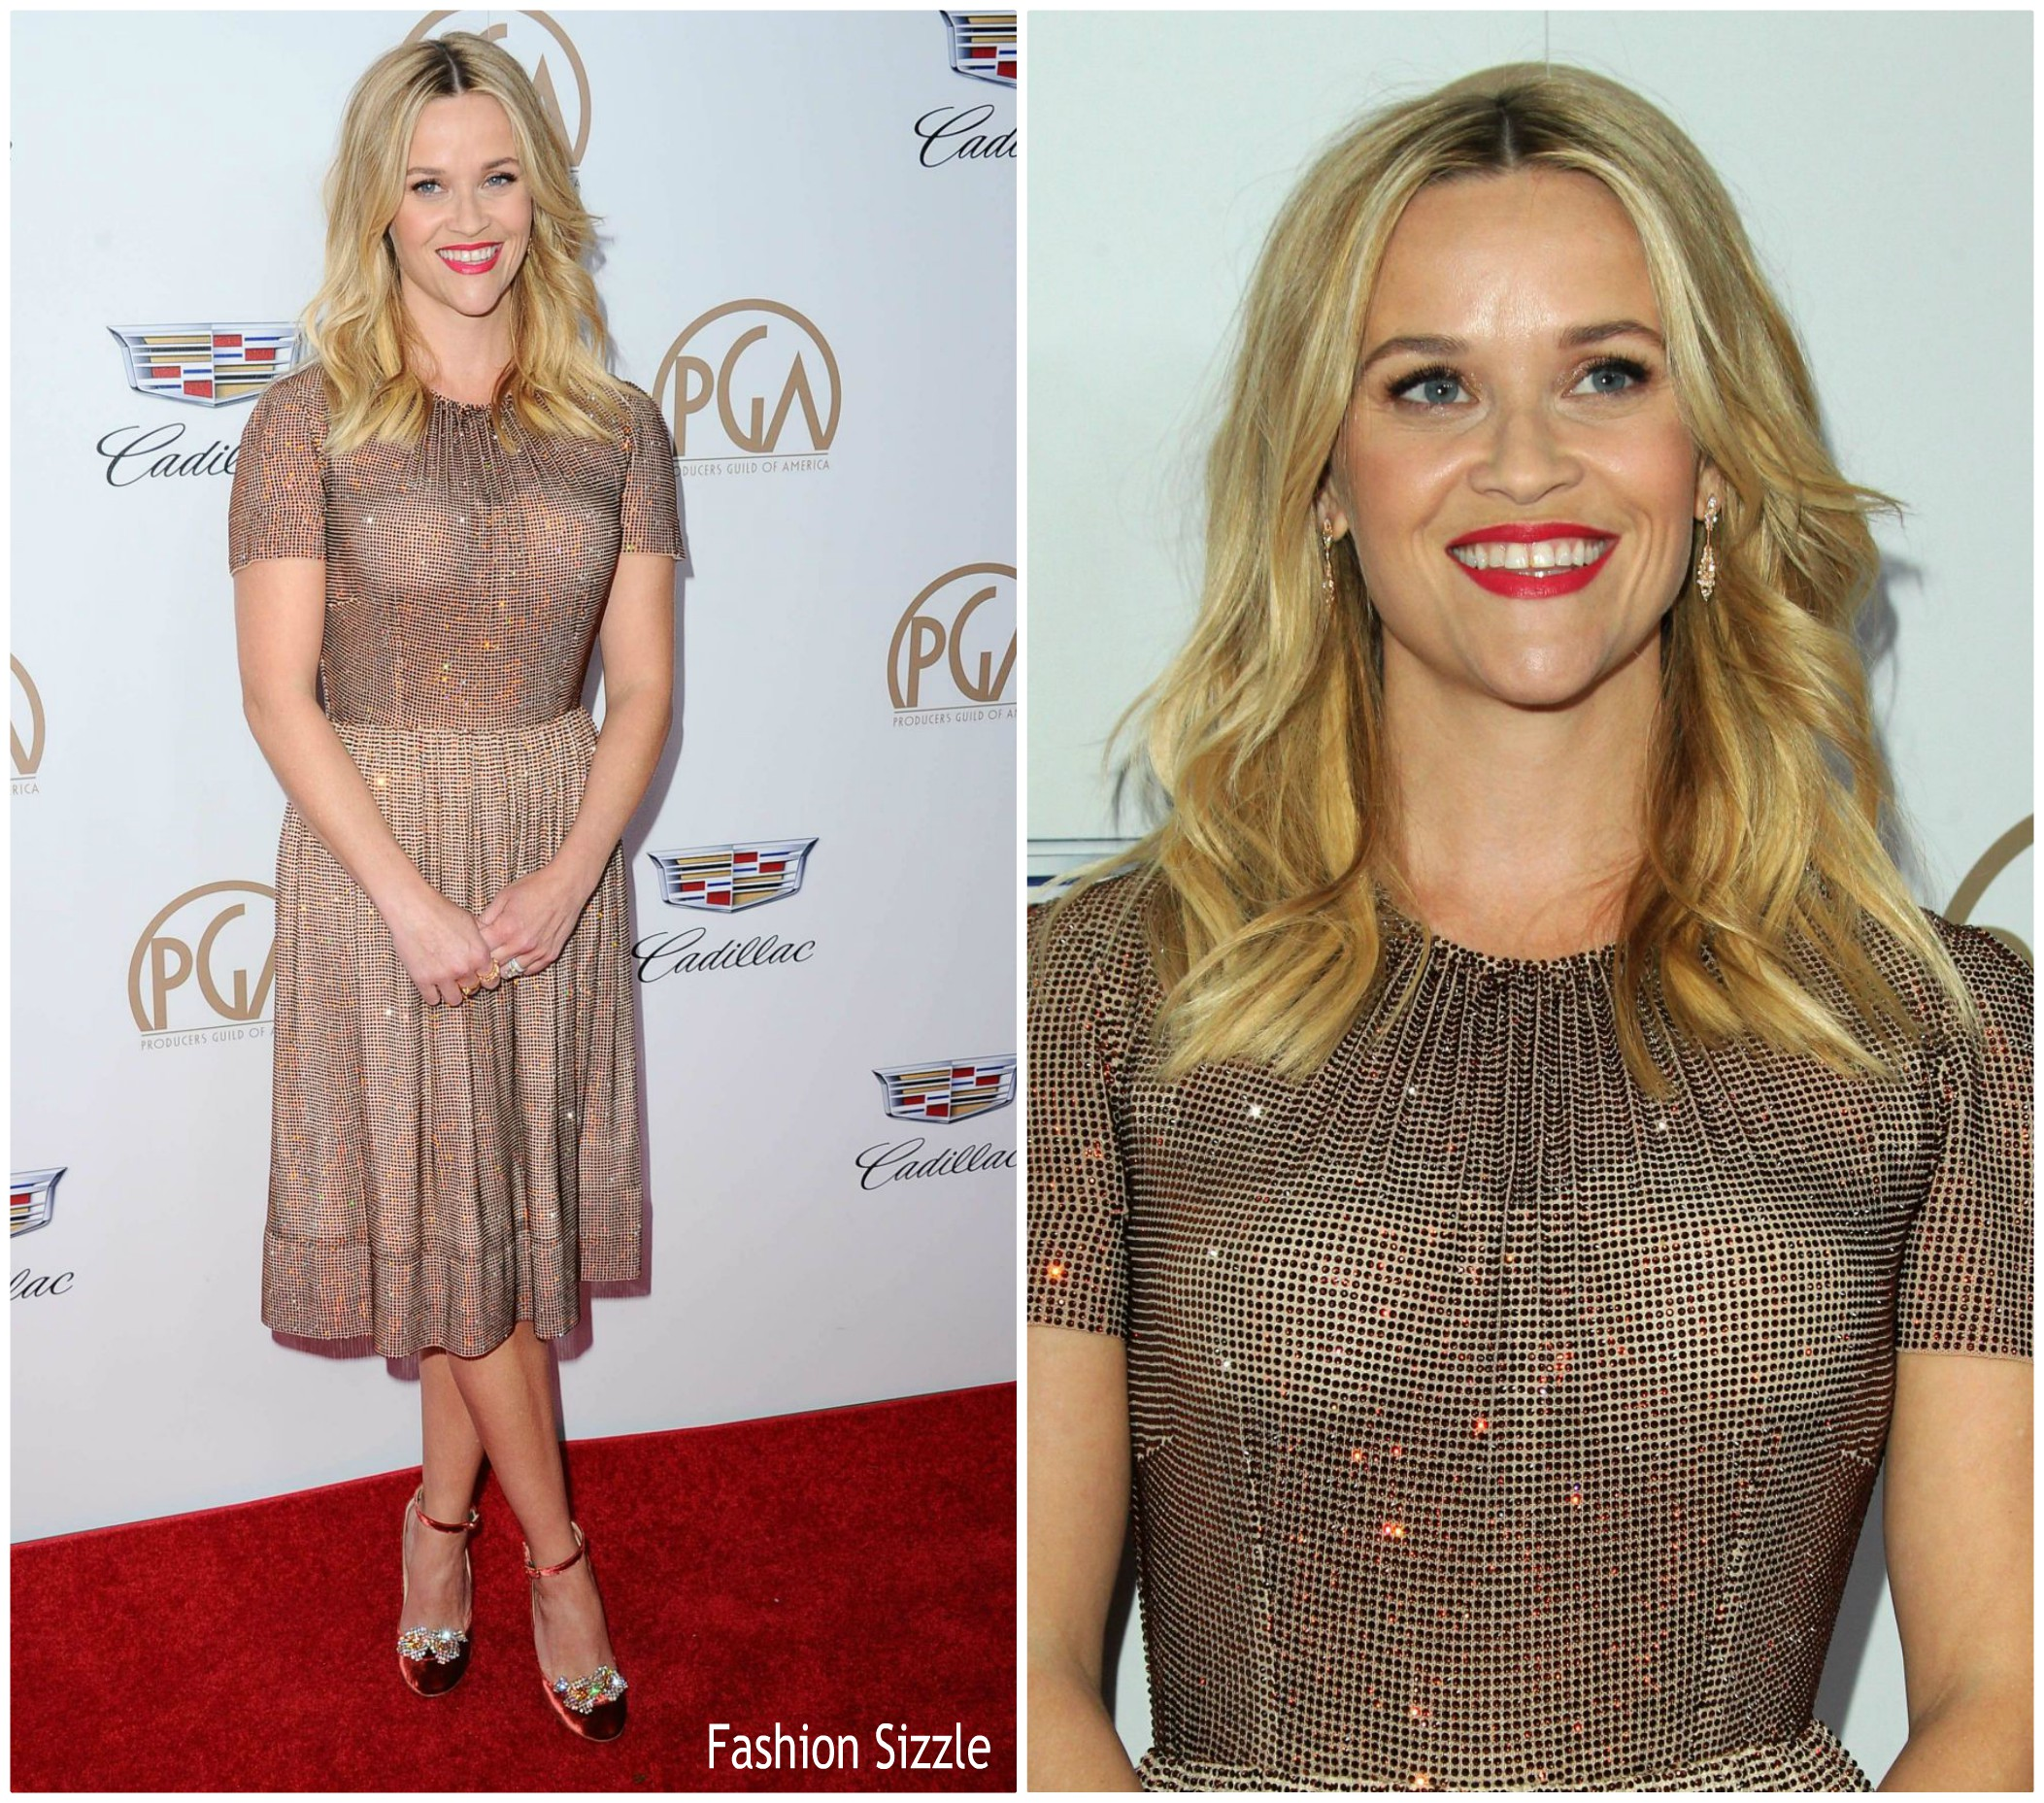 reese-witherspoon-in-dolce-gabbana-2018-producers-guild-awards